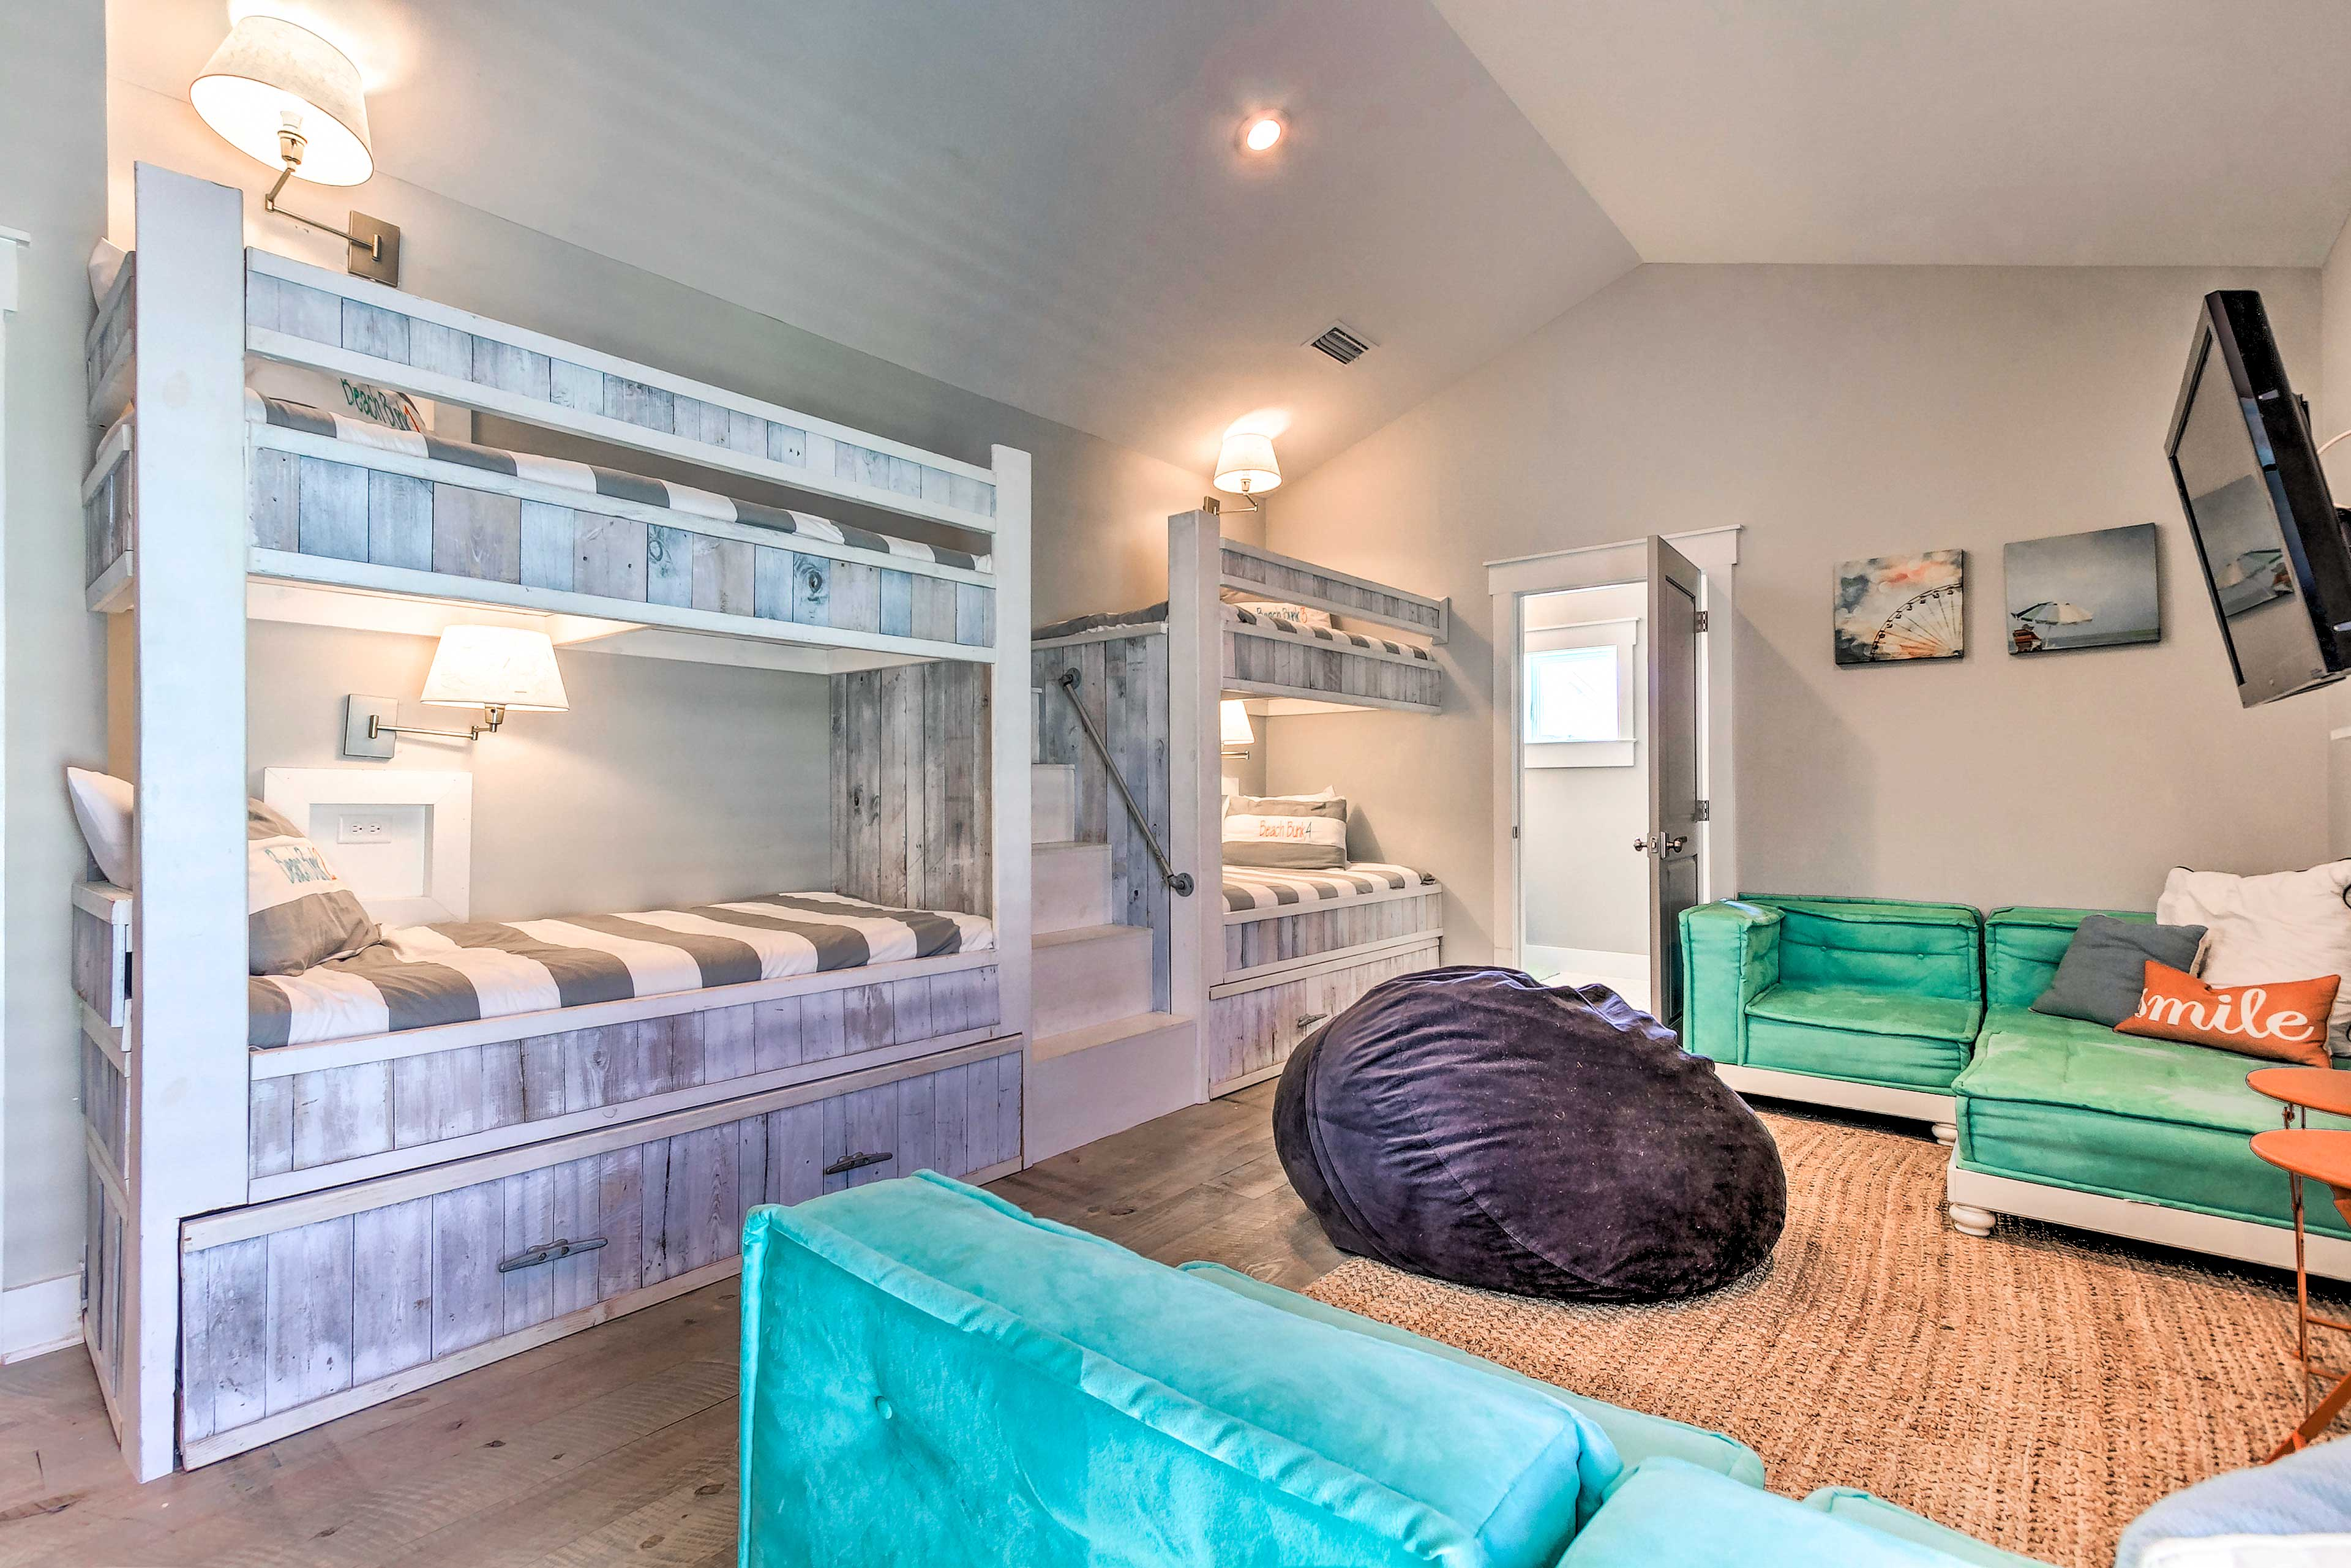 Kids will love claiming these double bunk beds (+ trundle beds) as their own!